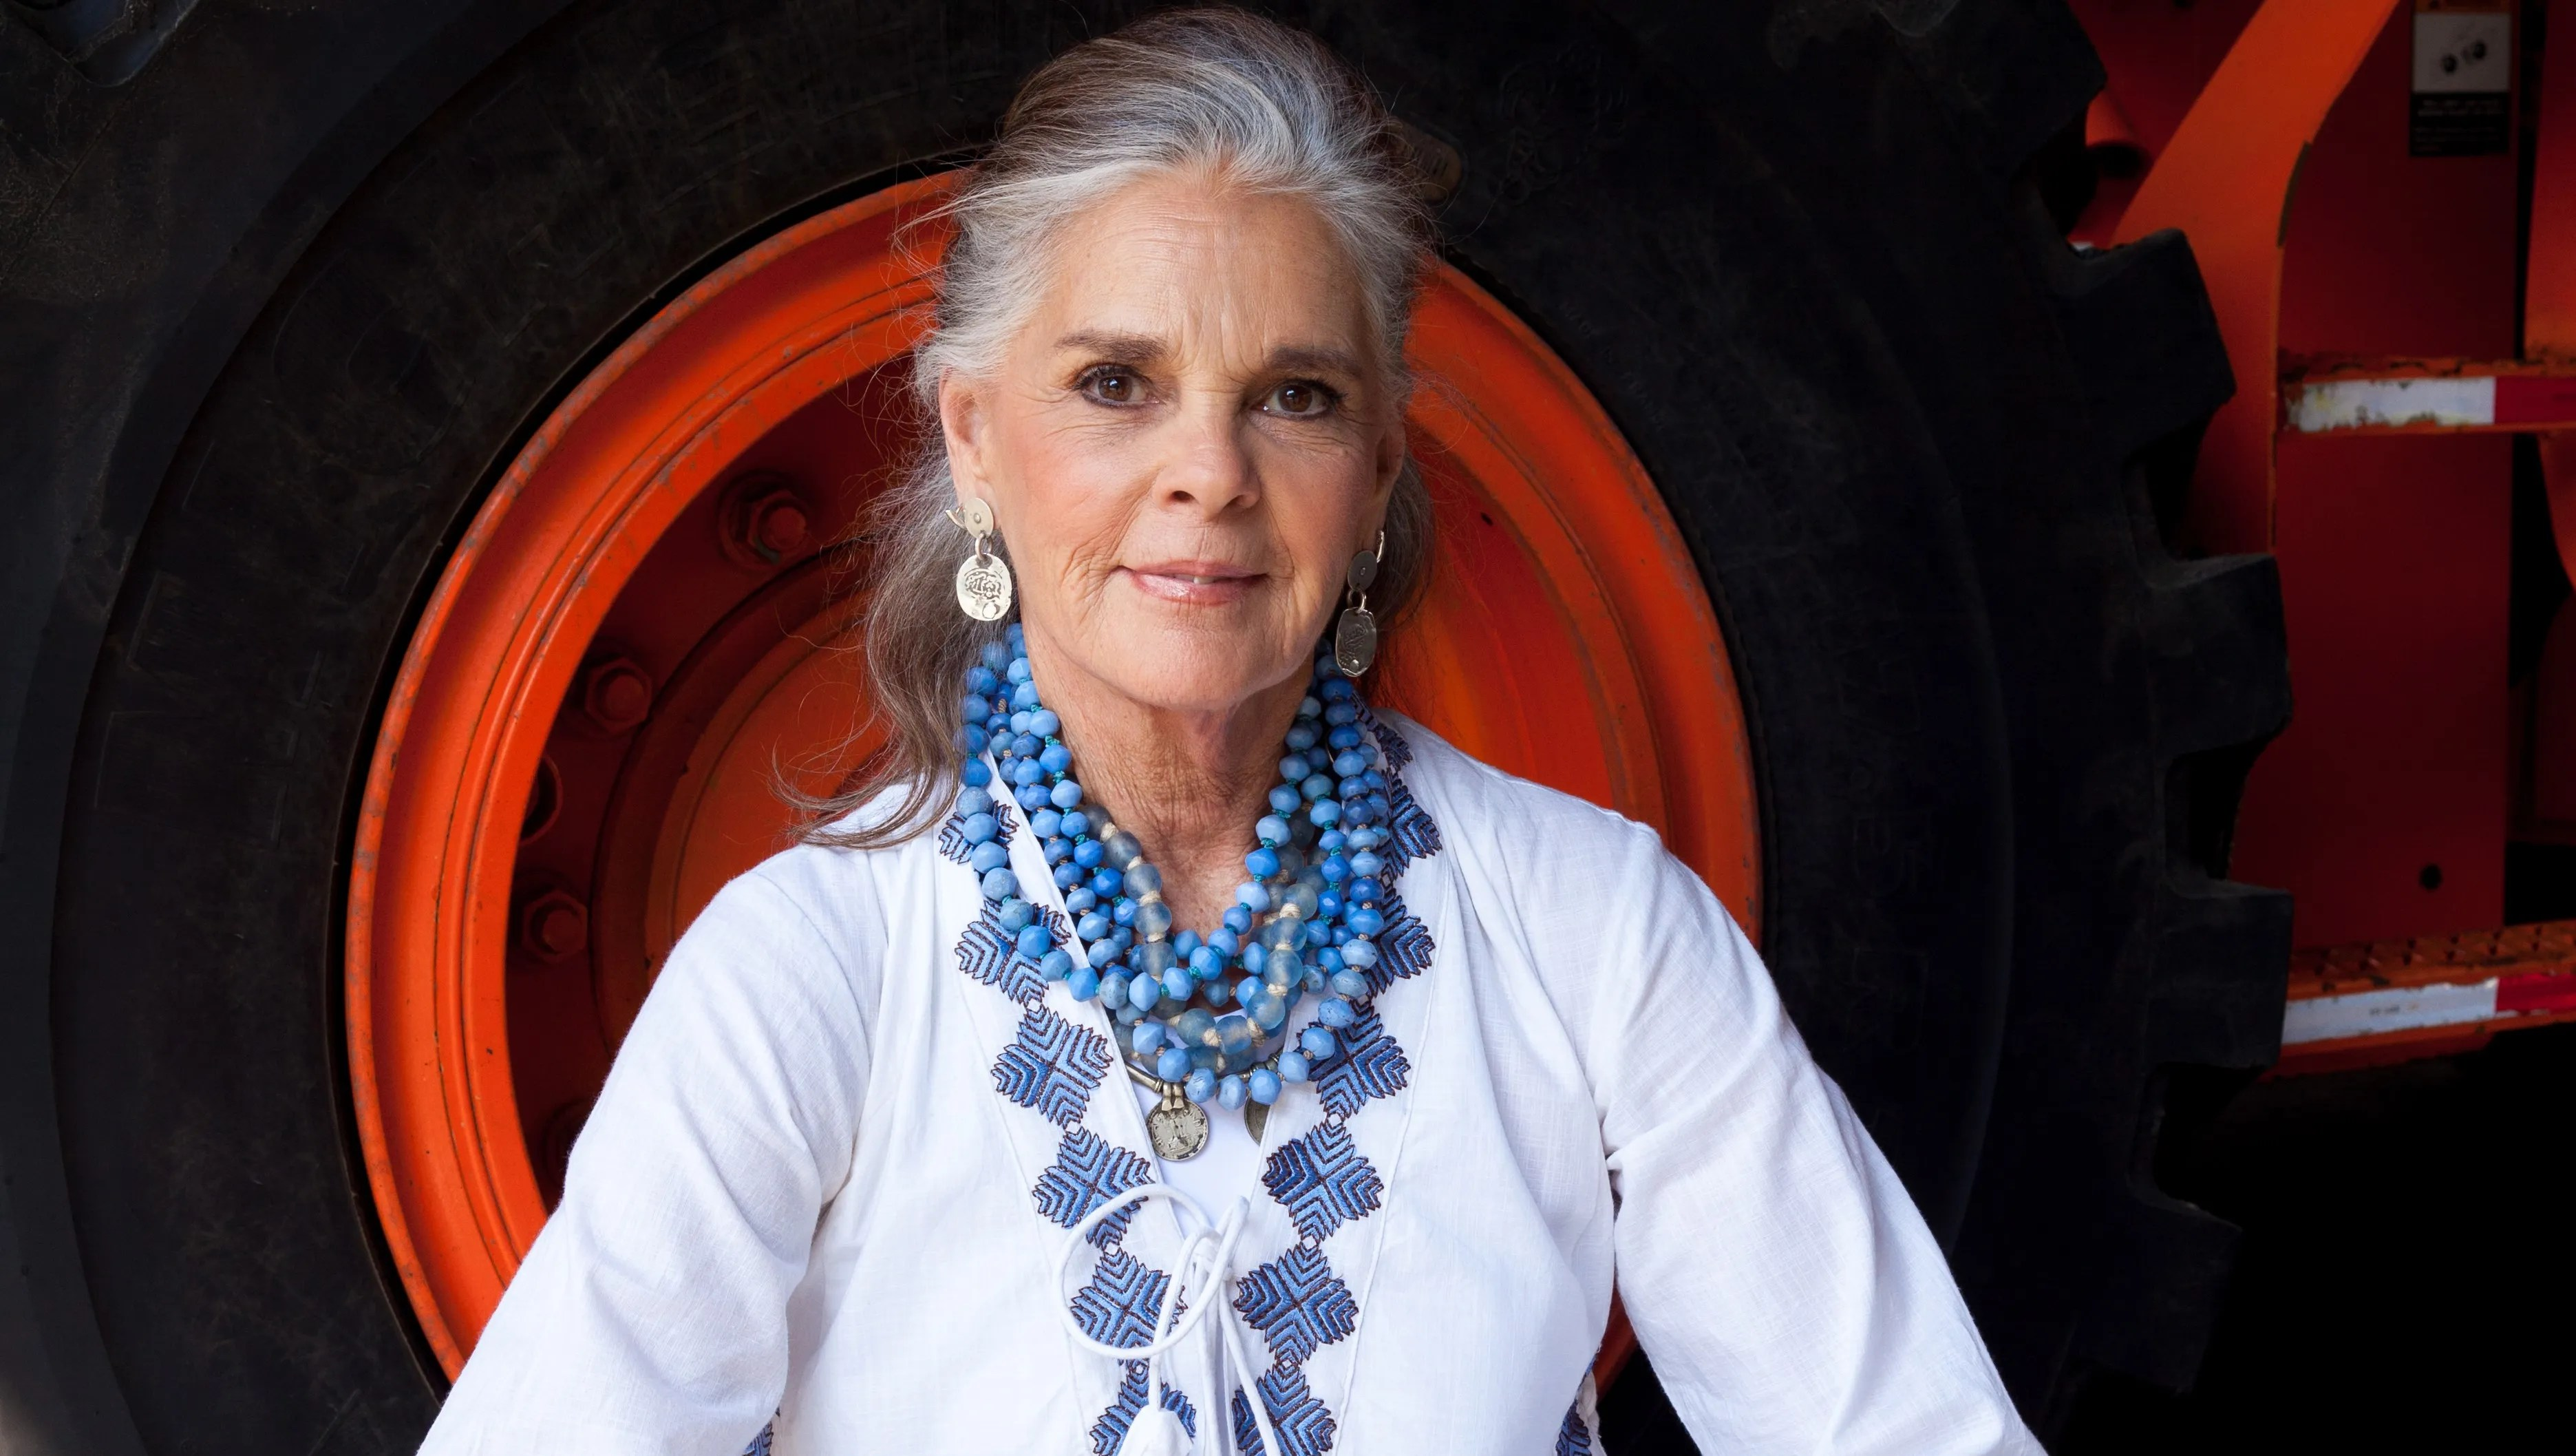 'Love Story' actress Ali MacGraw coming to Plaza Classic ...